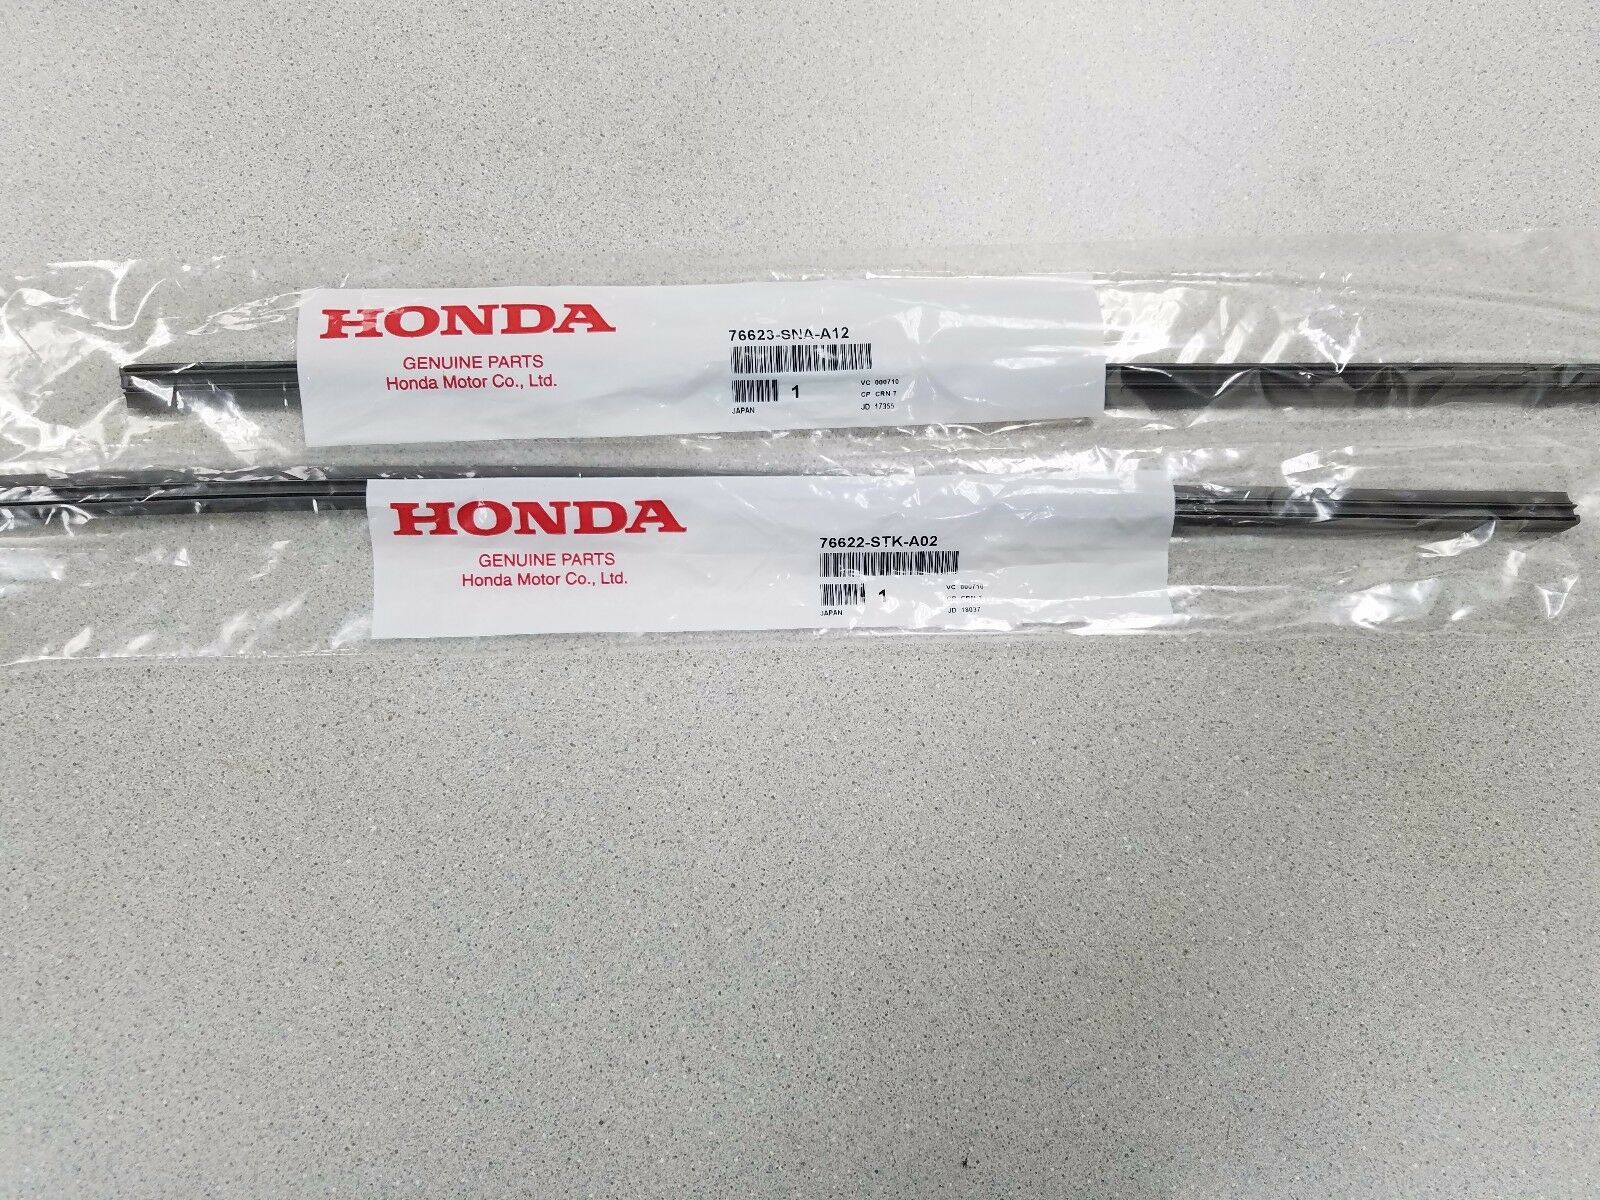 NEW GENUINE HONDA CIVIC 4 DOOR WIPER REFILL SET 2008 TO 2015 FOR FACTORY BLADES